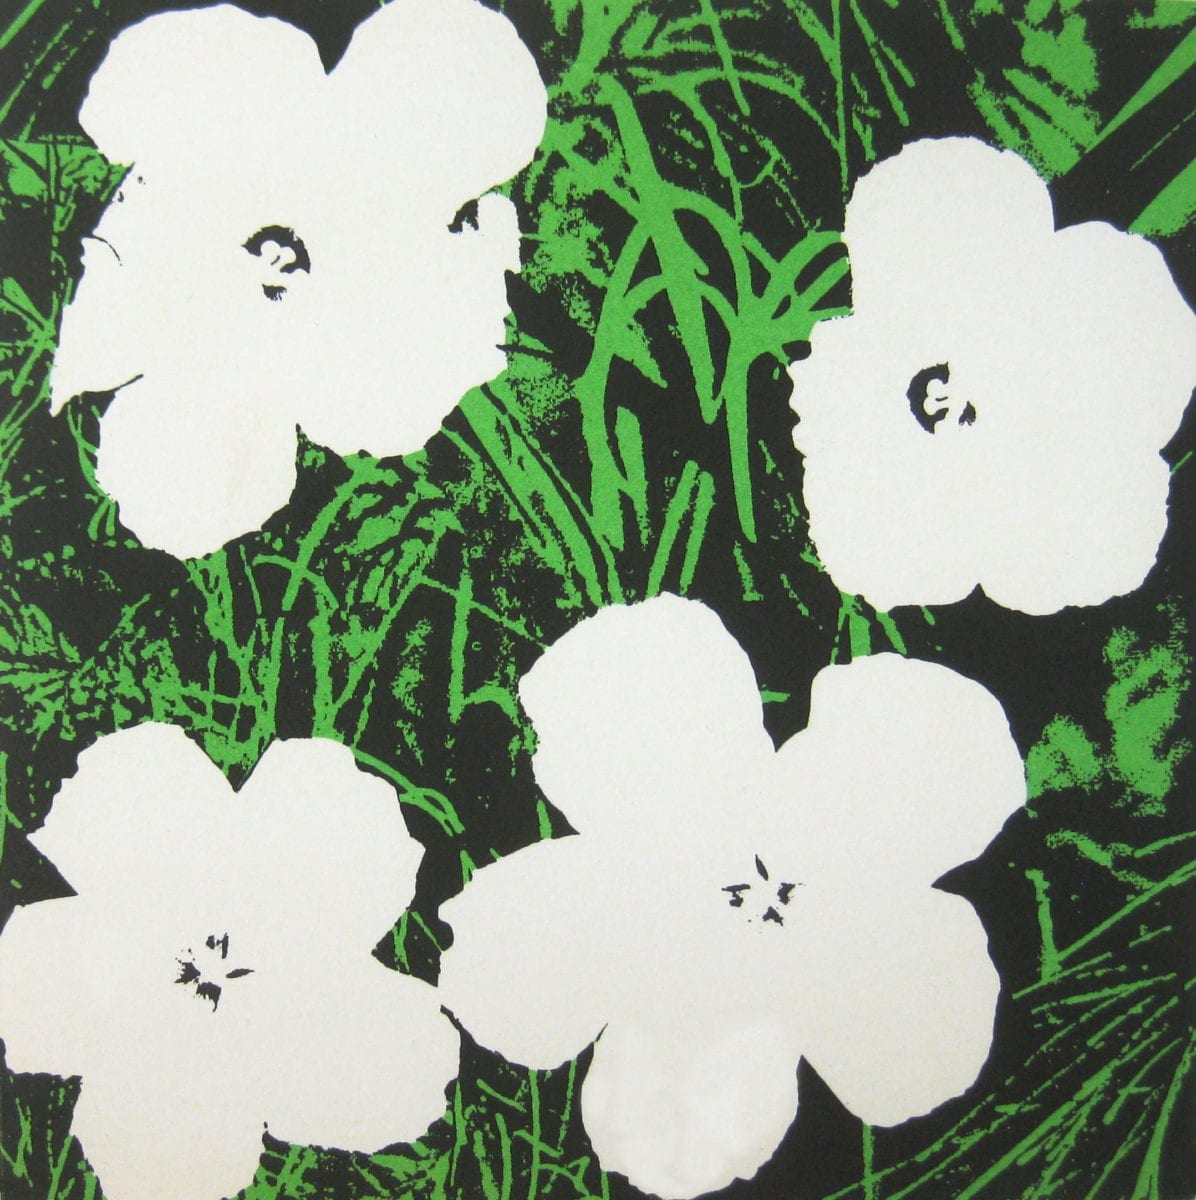 Andy Warhol, Flowers (MoMA). 1965. Image courtesy of Alden Projects, New York.